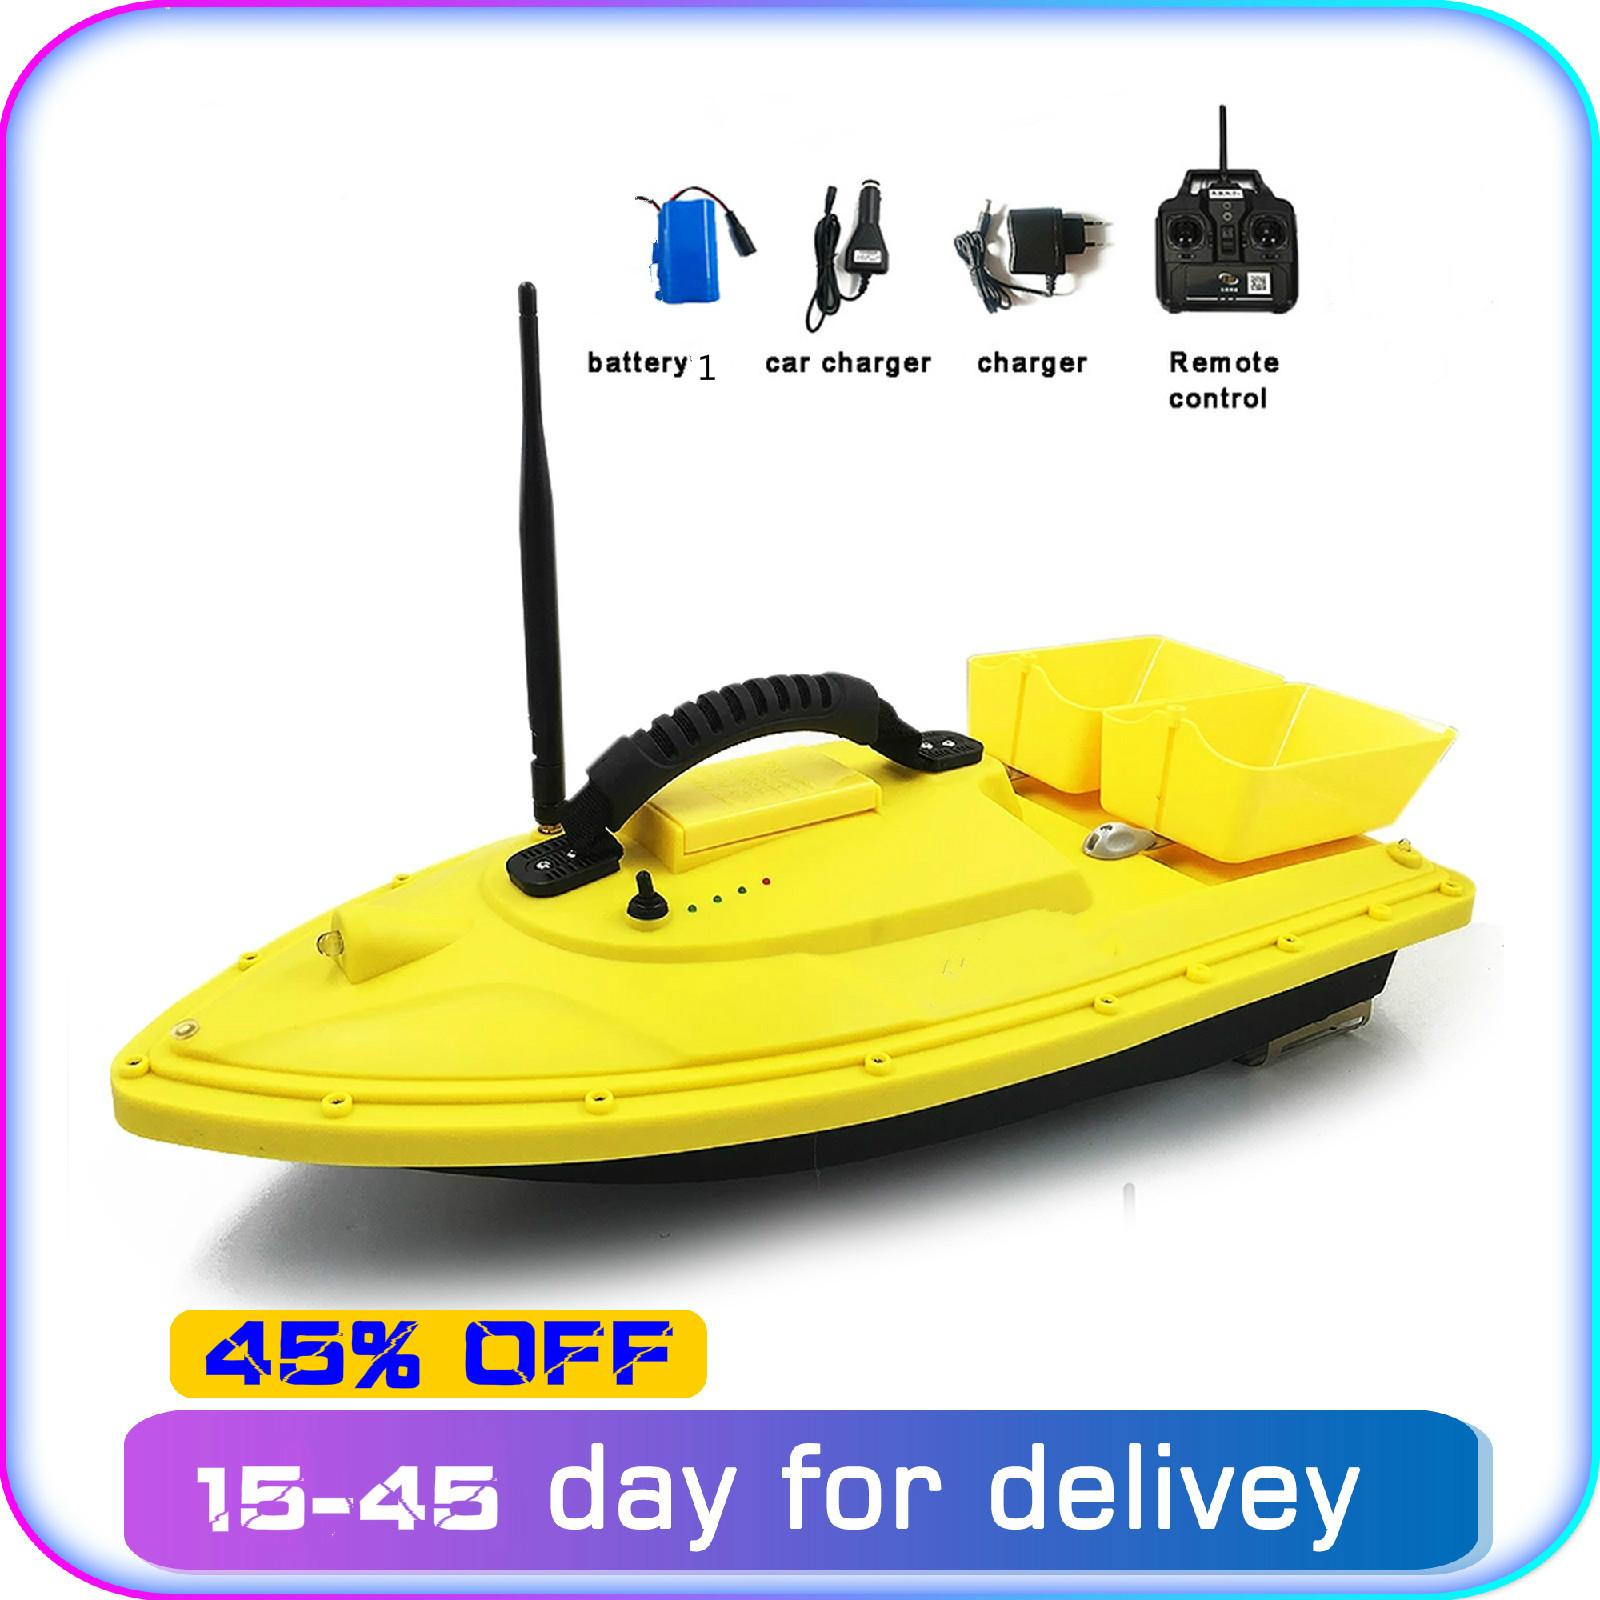 Fishing tools T188 Night Light RC Distance Auto Lure Fishing Smart Remote Control Bait Boat Toy Fish Finder Wireless 1.5KG 500M